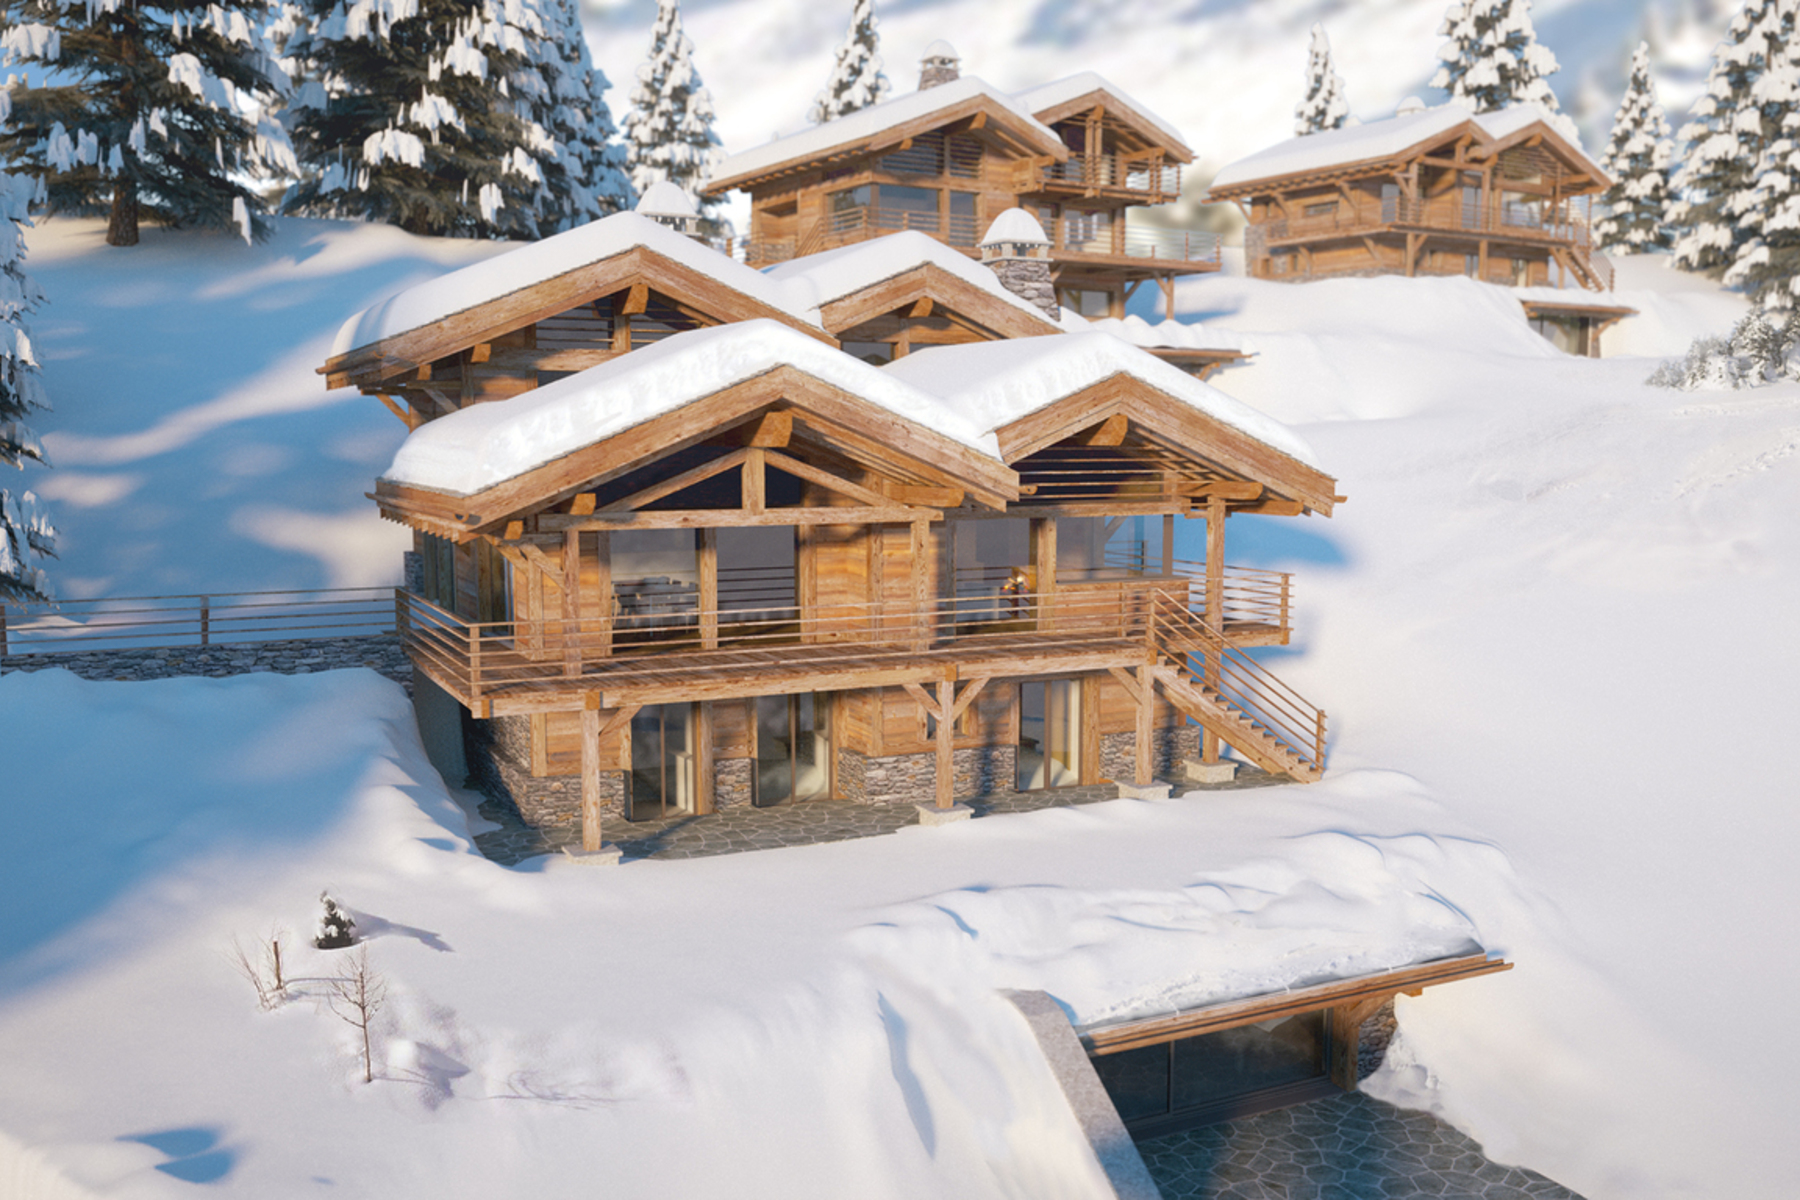 Villa per Vendita alle ore Sagarmatha Chalets, a unique off-plan property of over 2200m2 Verbier, Vallese, 1936 Svizzera